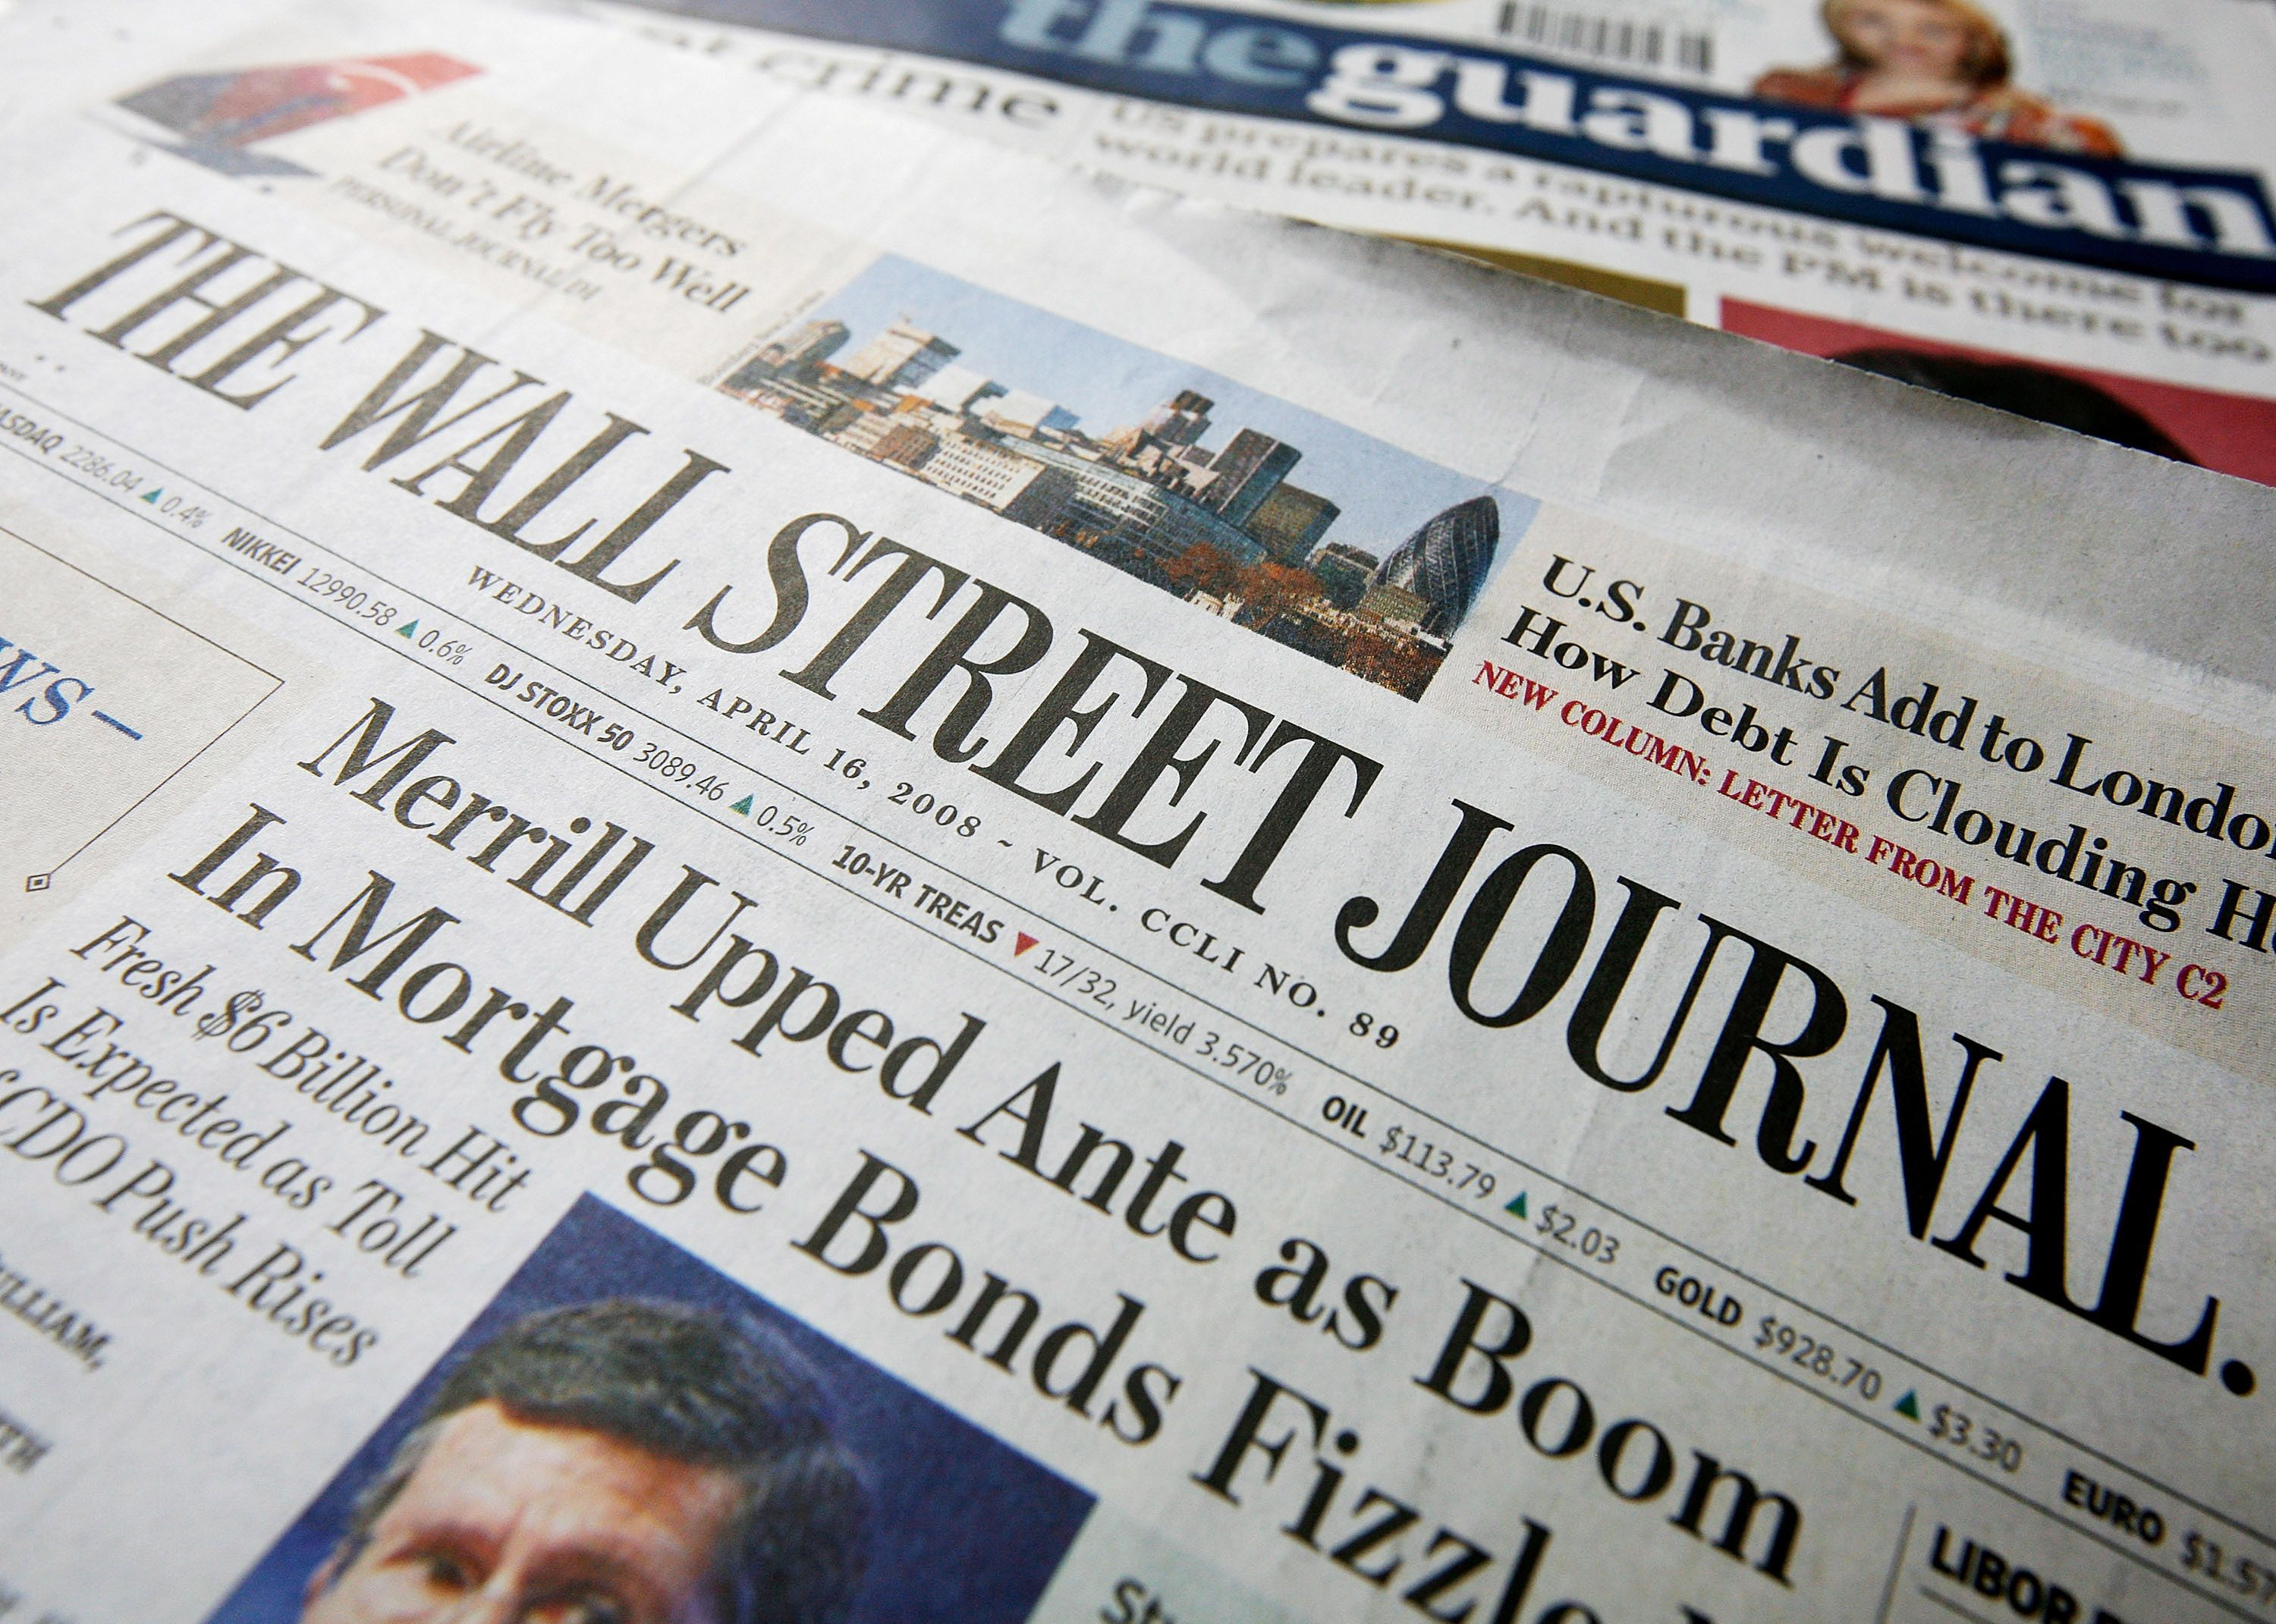 Wall Street Journal Wall Street Journal Wall Street Journal